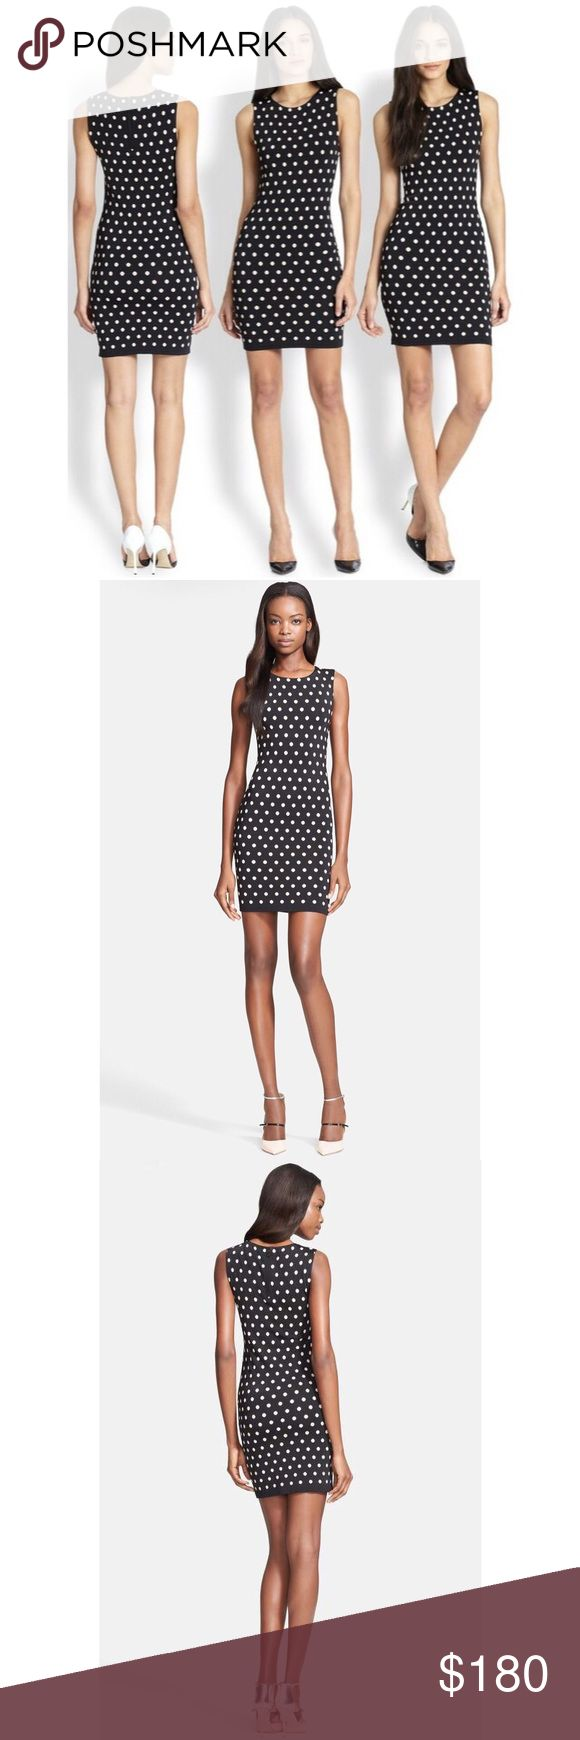 """NWOT Alice + Olivia Marta Polka Dot Bodycon Dress A slinky, curve-contouring fit is offset by playful polka dots on a sleeveless knit dress that's equal parts sugar and spice.  34"""" length (size Medium). 85% rayon, 13% polyamide, 2% spandex. Material is thick to give a smooth and flattering fit.  By Alice + Olivia; Never worn! Alice + Olivia Dresses Mini"""